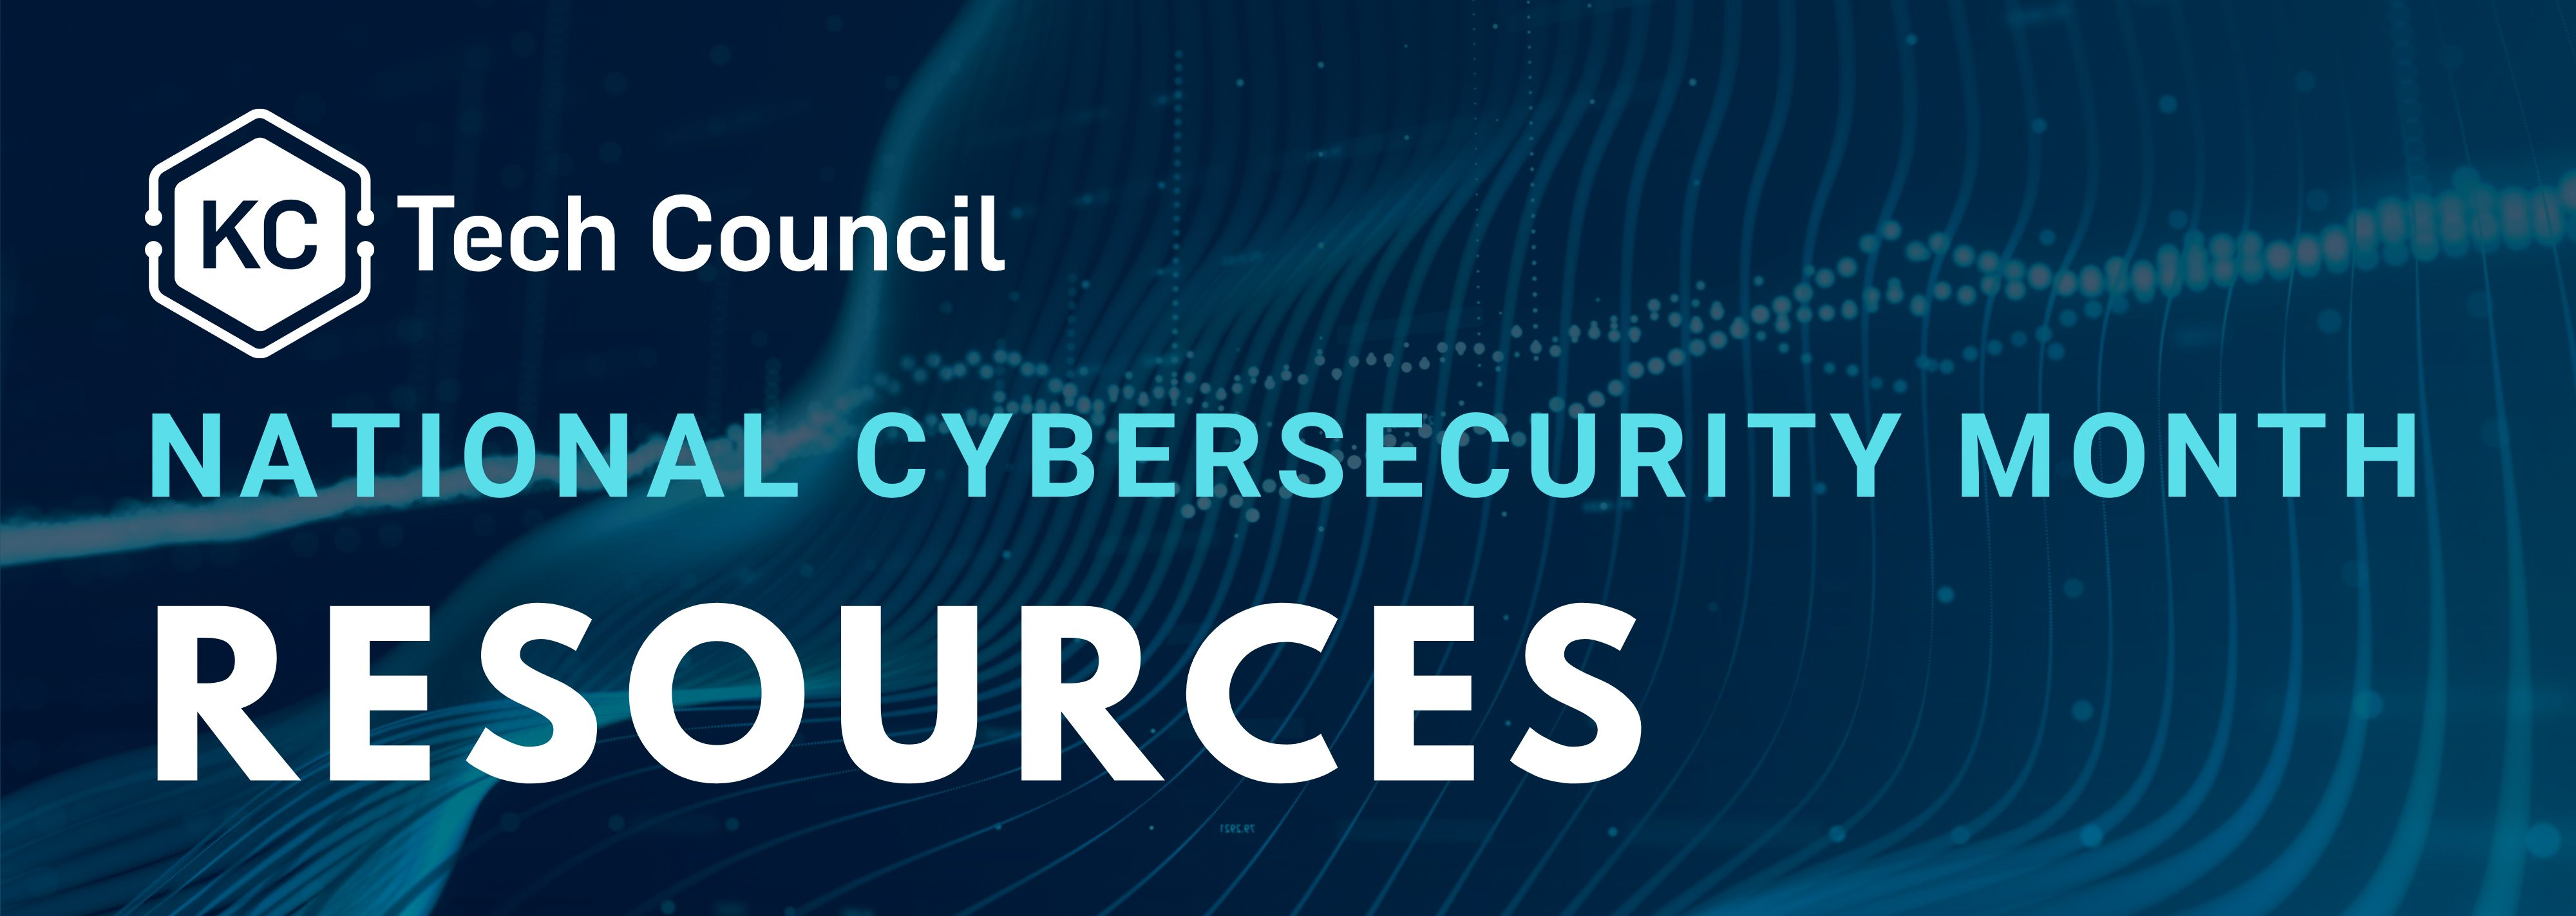 NATIONAL CYBERSECURITY MONTH Final